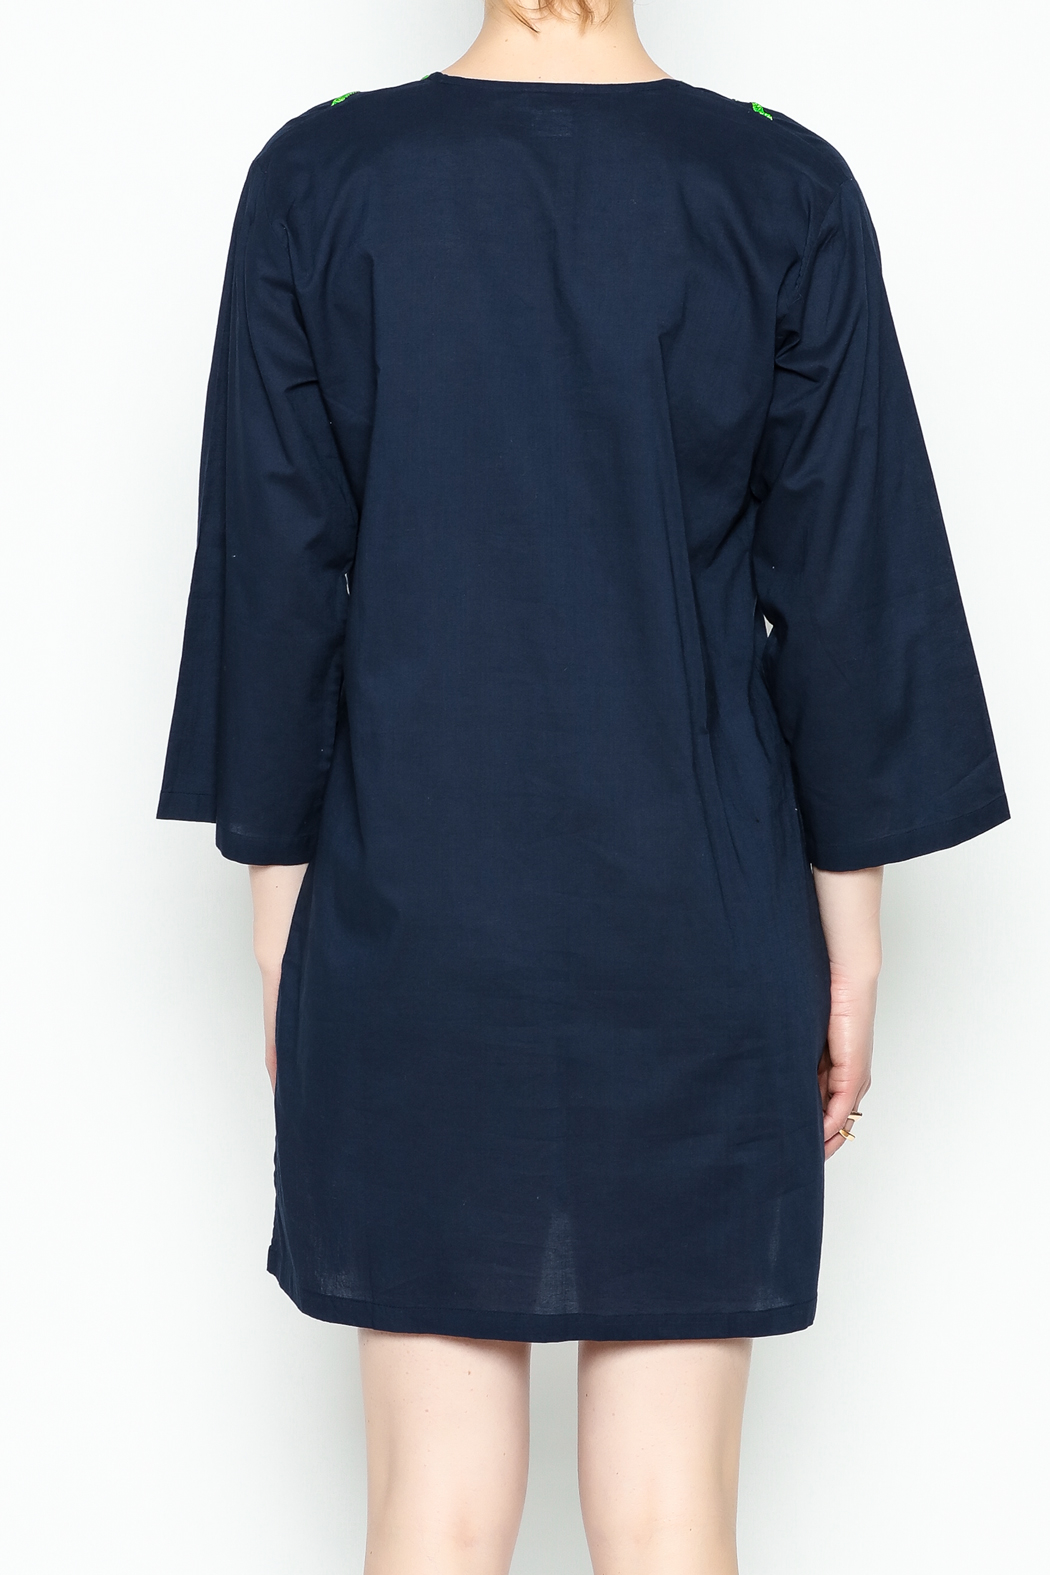 Top It Off Navy Embroidered Tunic - Back Cropped Image